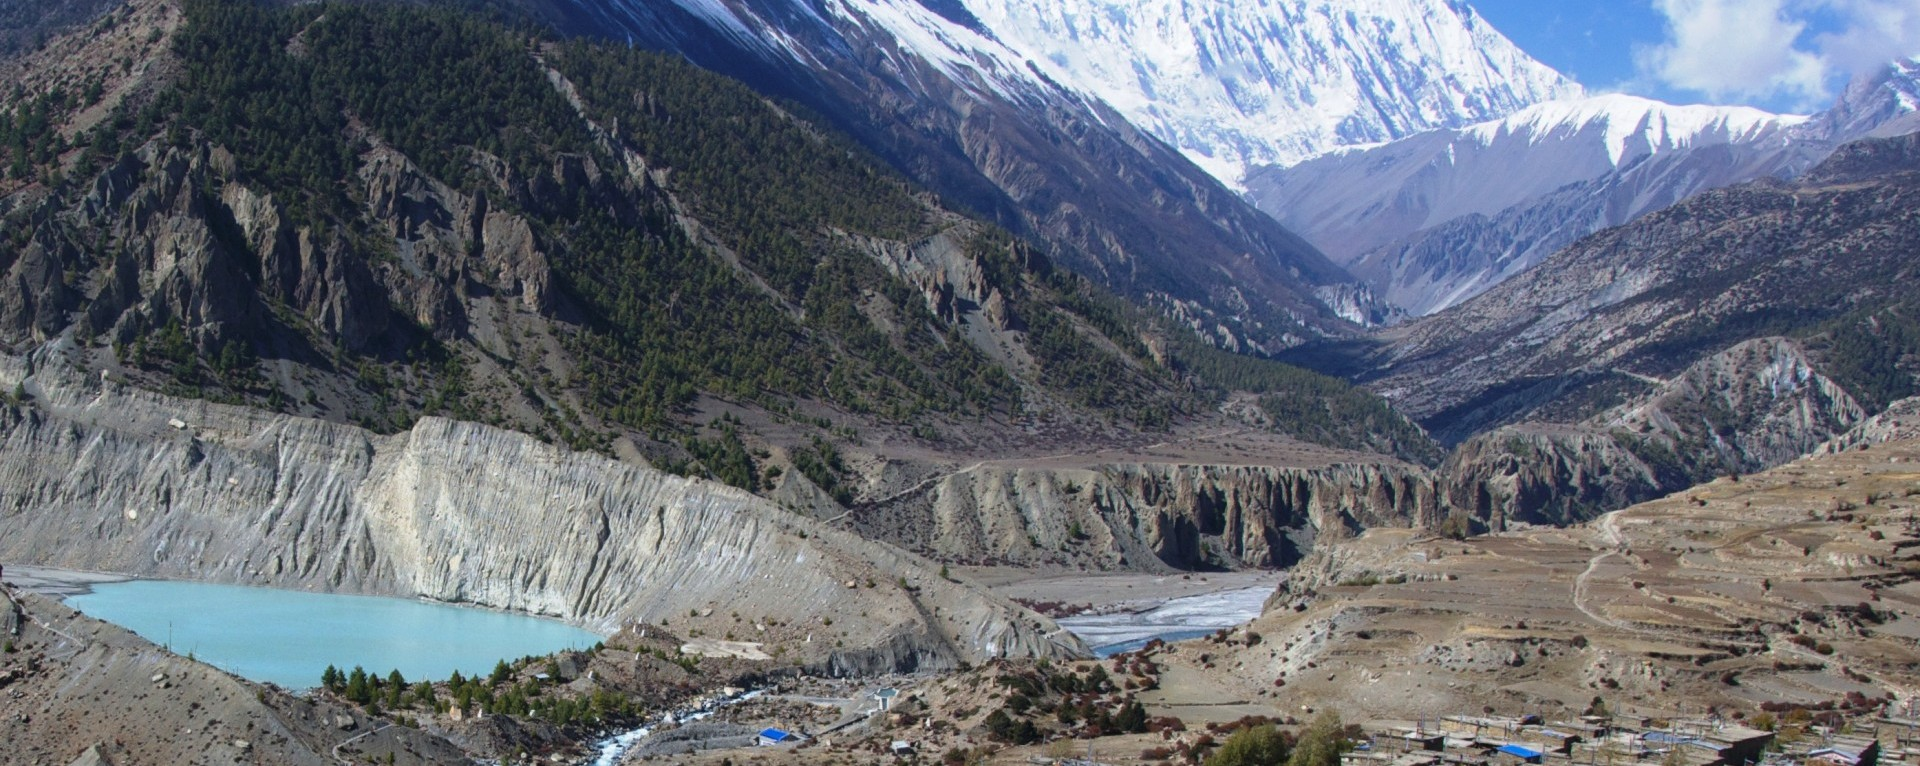 The view of Manang village, Annapurna circuit trek